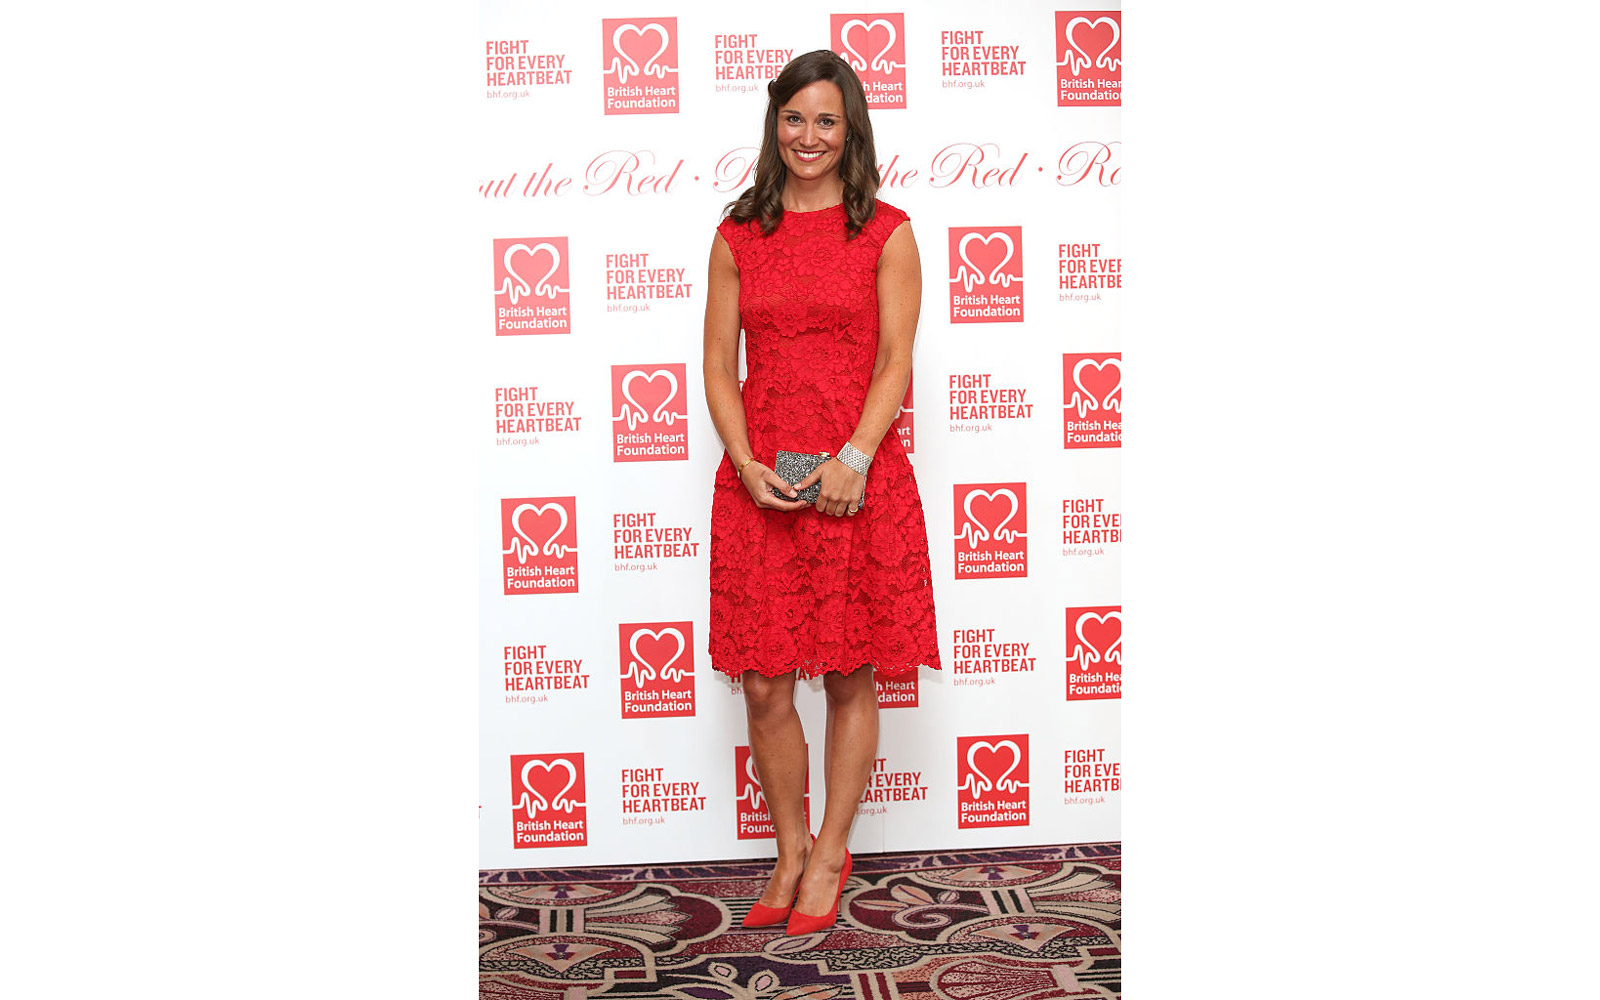 LONDON, ENGLAND - FEBRUARY 10:  Pippa Middleton attends the British Heart Foundation's Roll Out The Red Ball at Park Lane Hotel on February 10, 2015 in London, England.  (Photo by Tim P. Whitby/Getty Images)